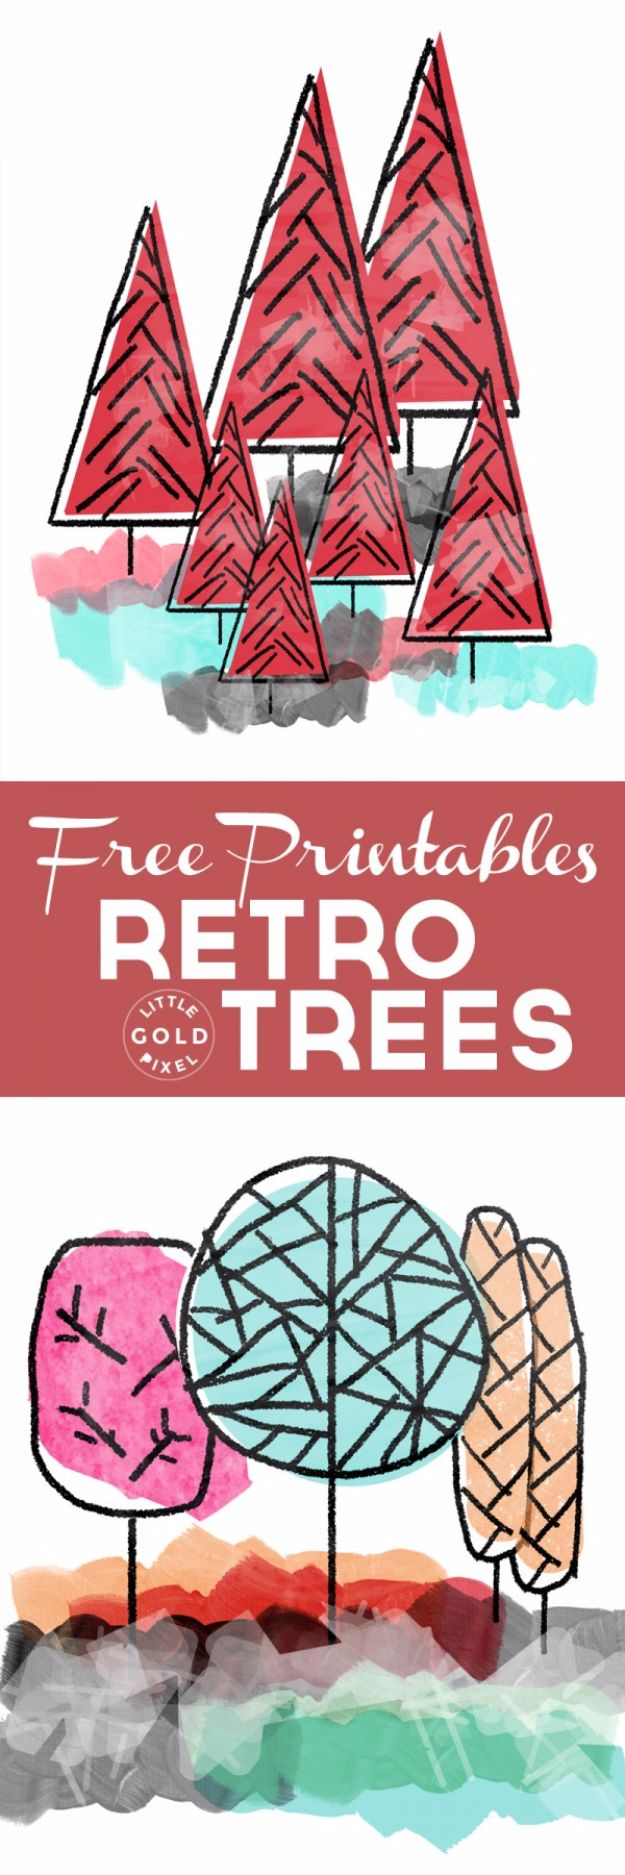 dining room printable art. Best Free Printables For Your Walls - Awesome Retro Trees Prints Dining Room Printable Art